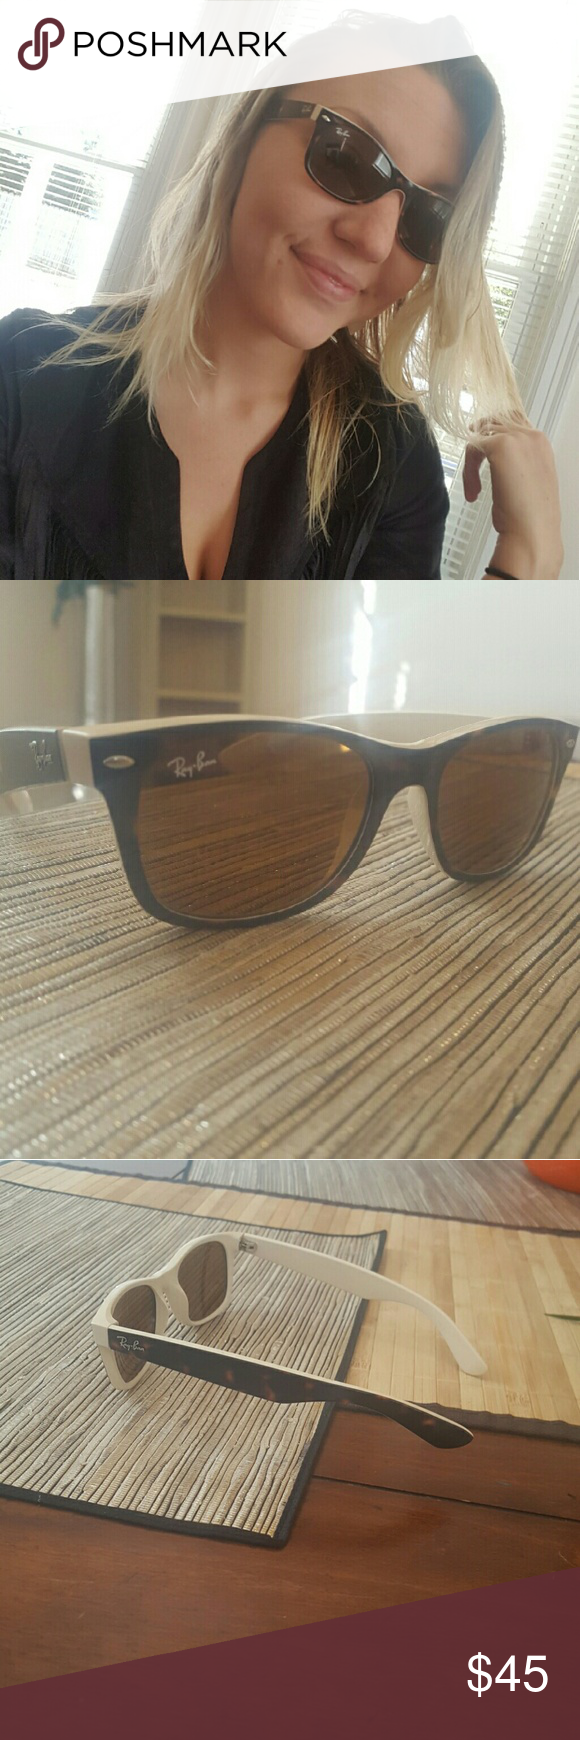 Ray ban sunglasses for couple - Ray Bans White Brown Black Really Cute Style Great Condition A Couple Tiny Marks In The Lenses Barely Noticeable Ray Ban Accessories Sunglasses